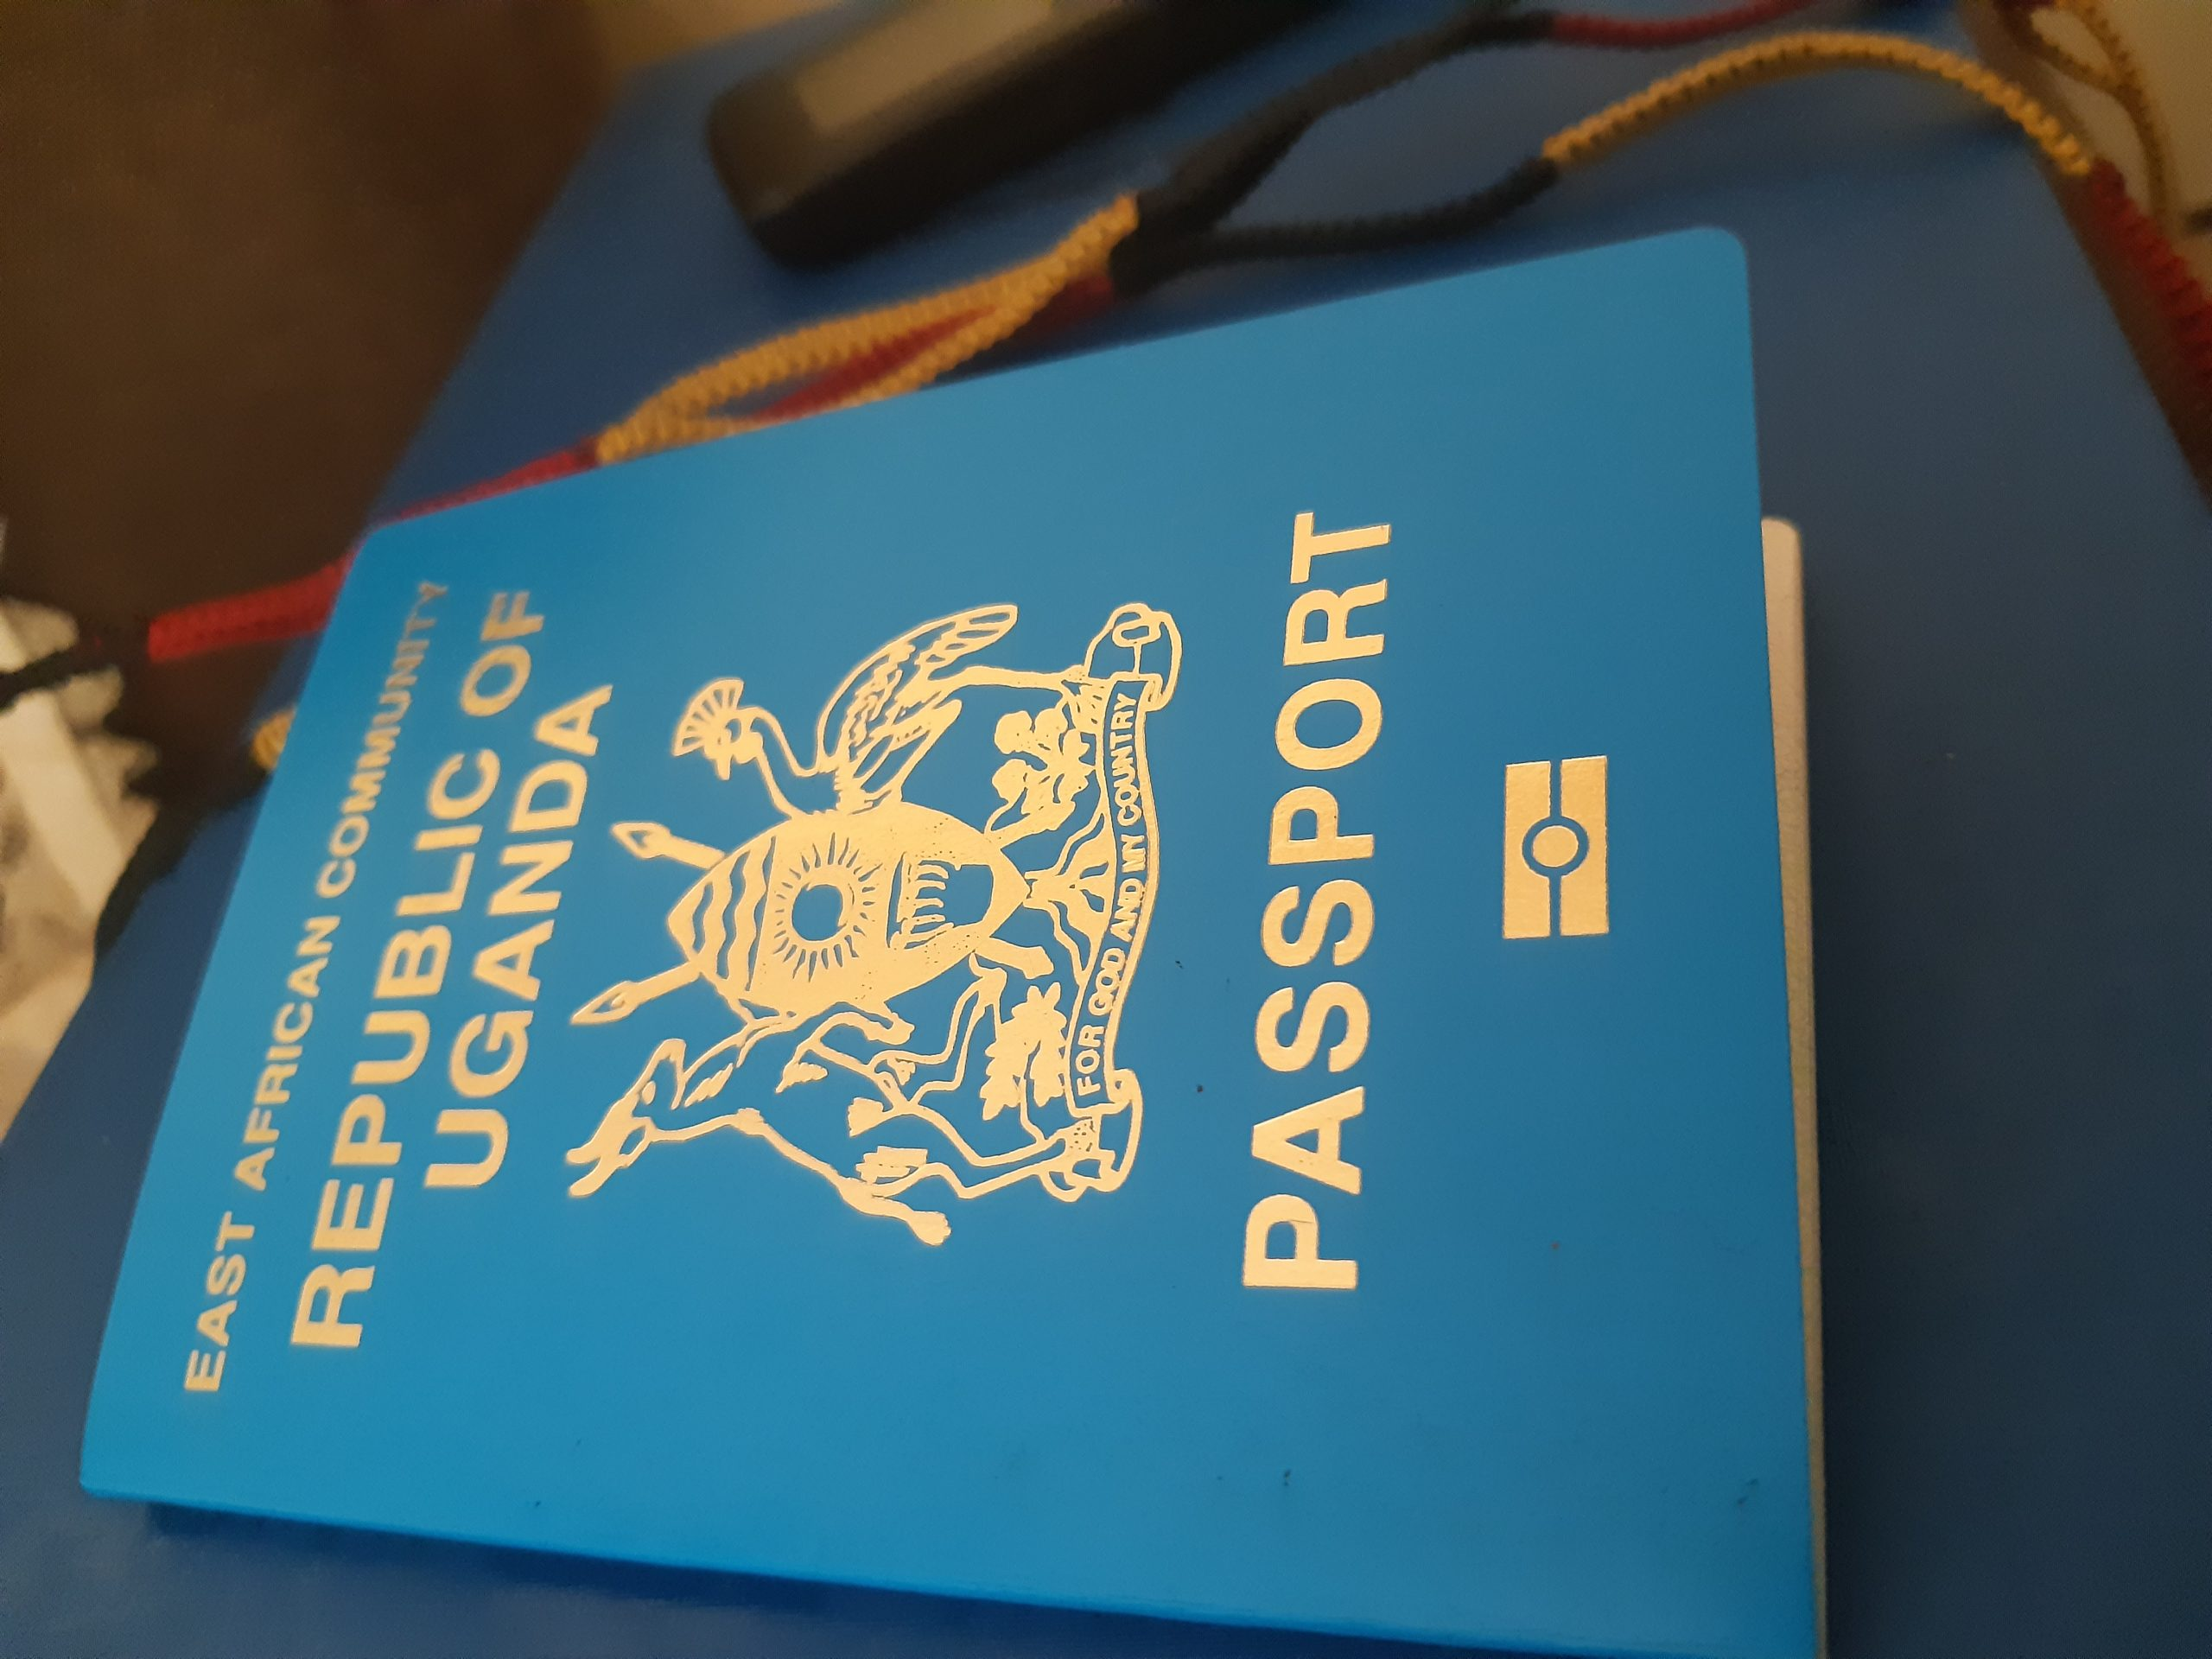 How to apply for the Ugandan e-passport online - HOW-TOS